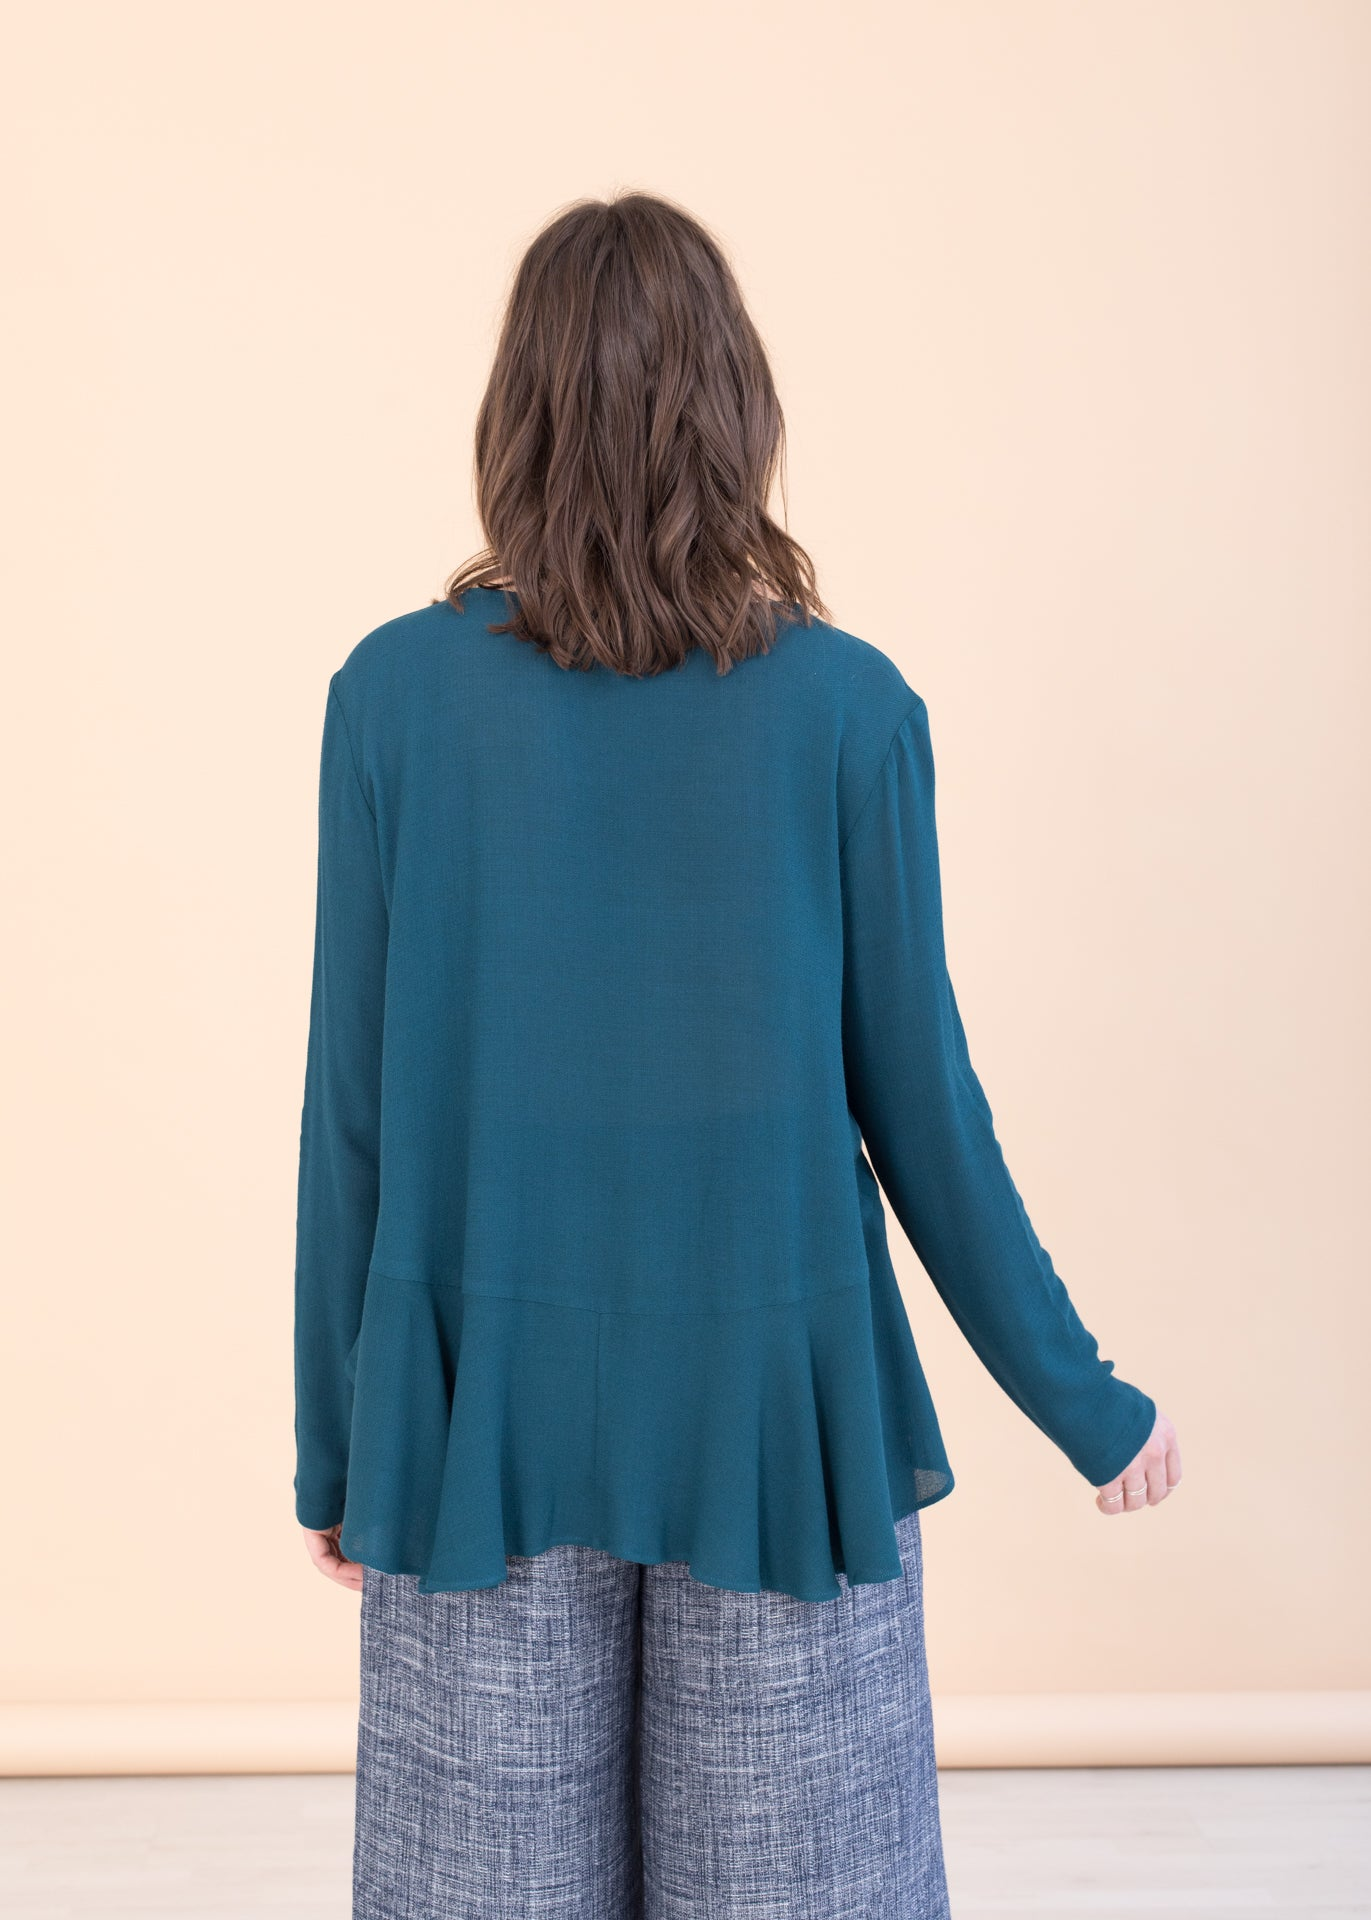 Midnight – Top in Teal